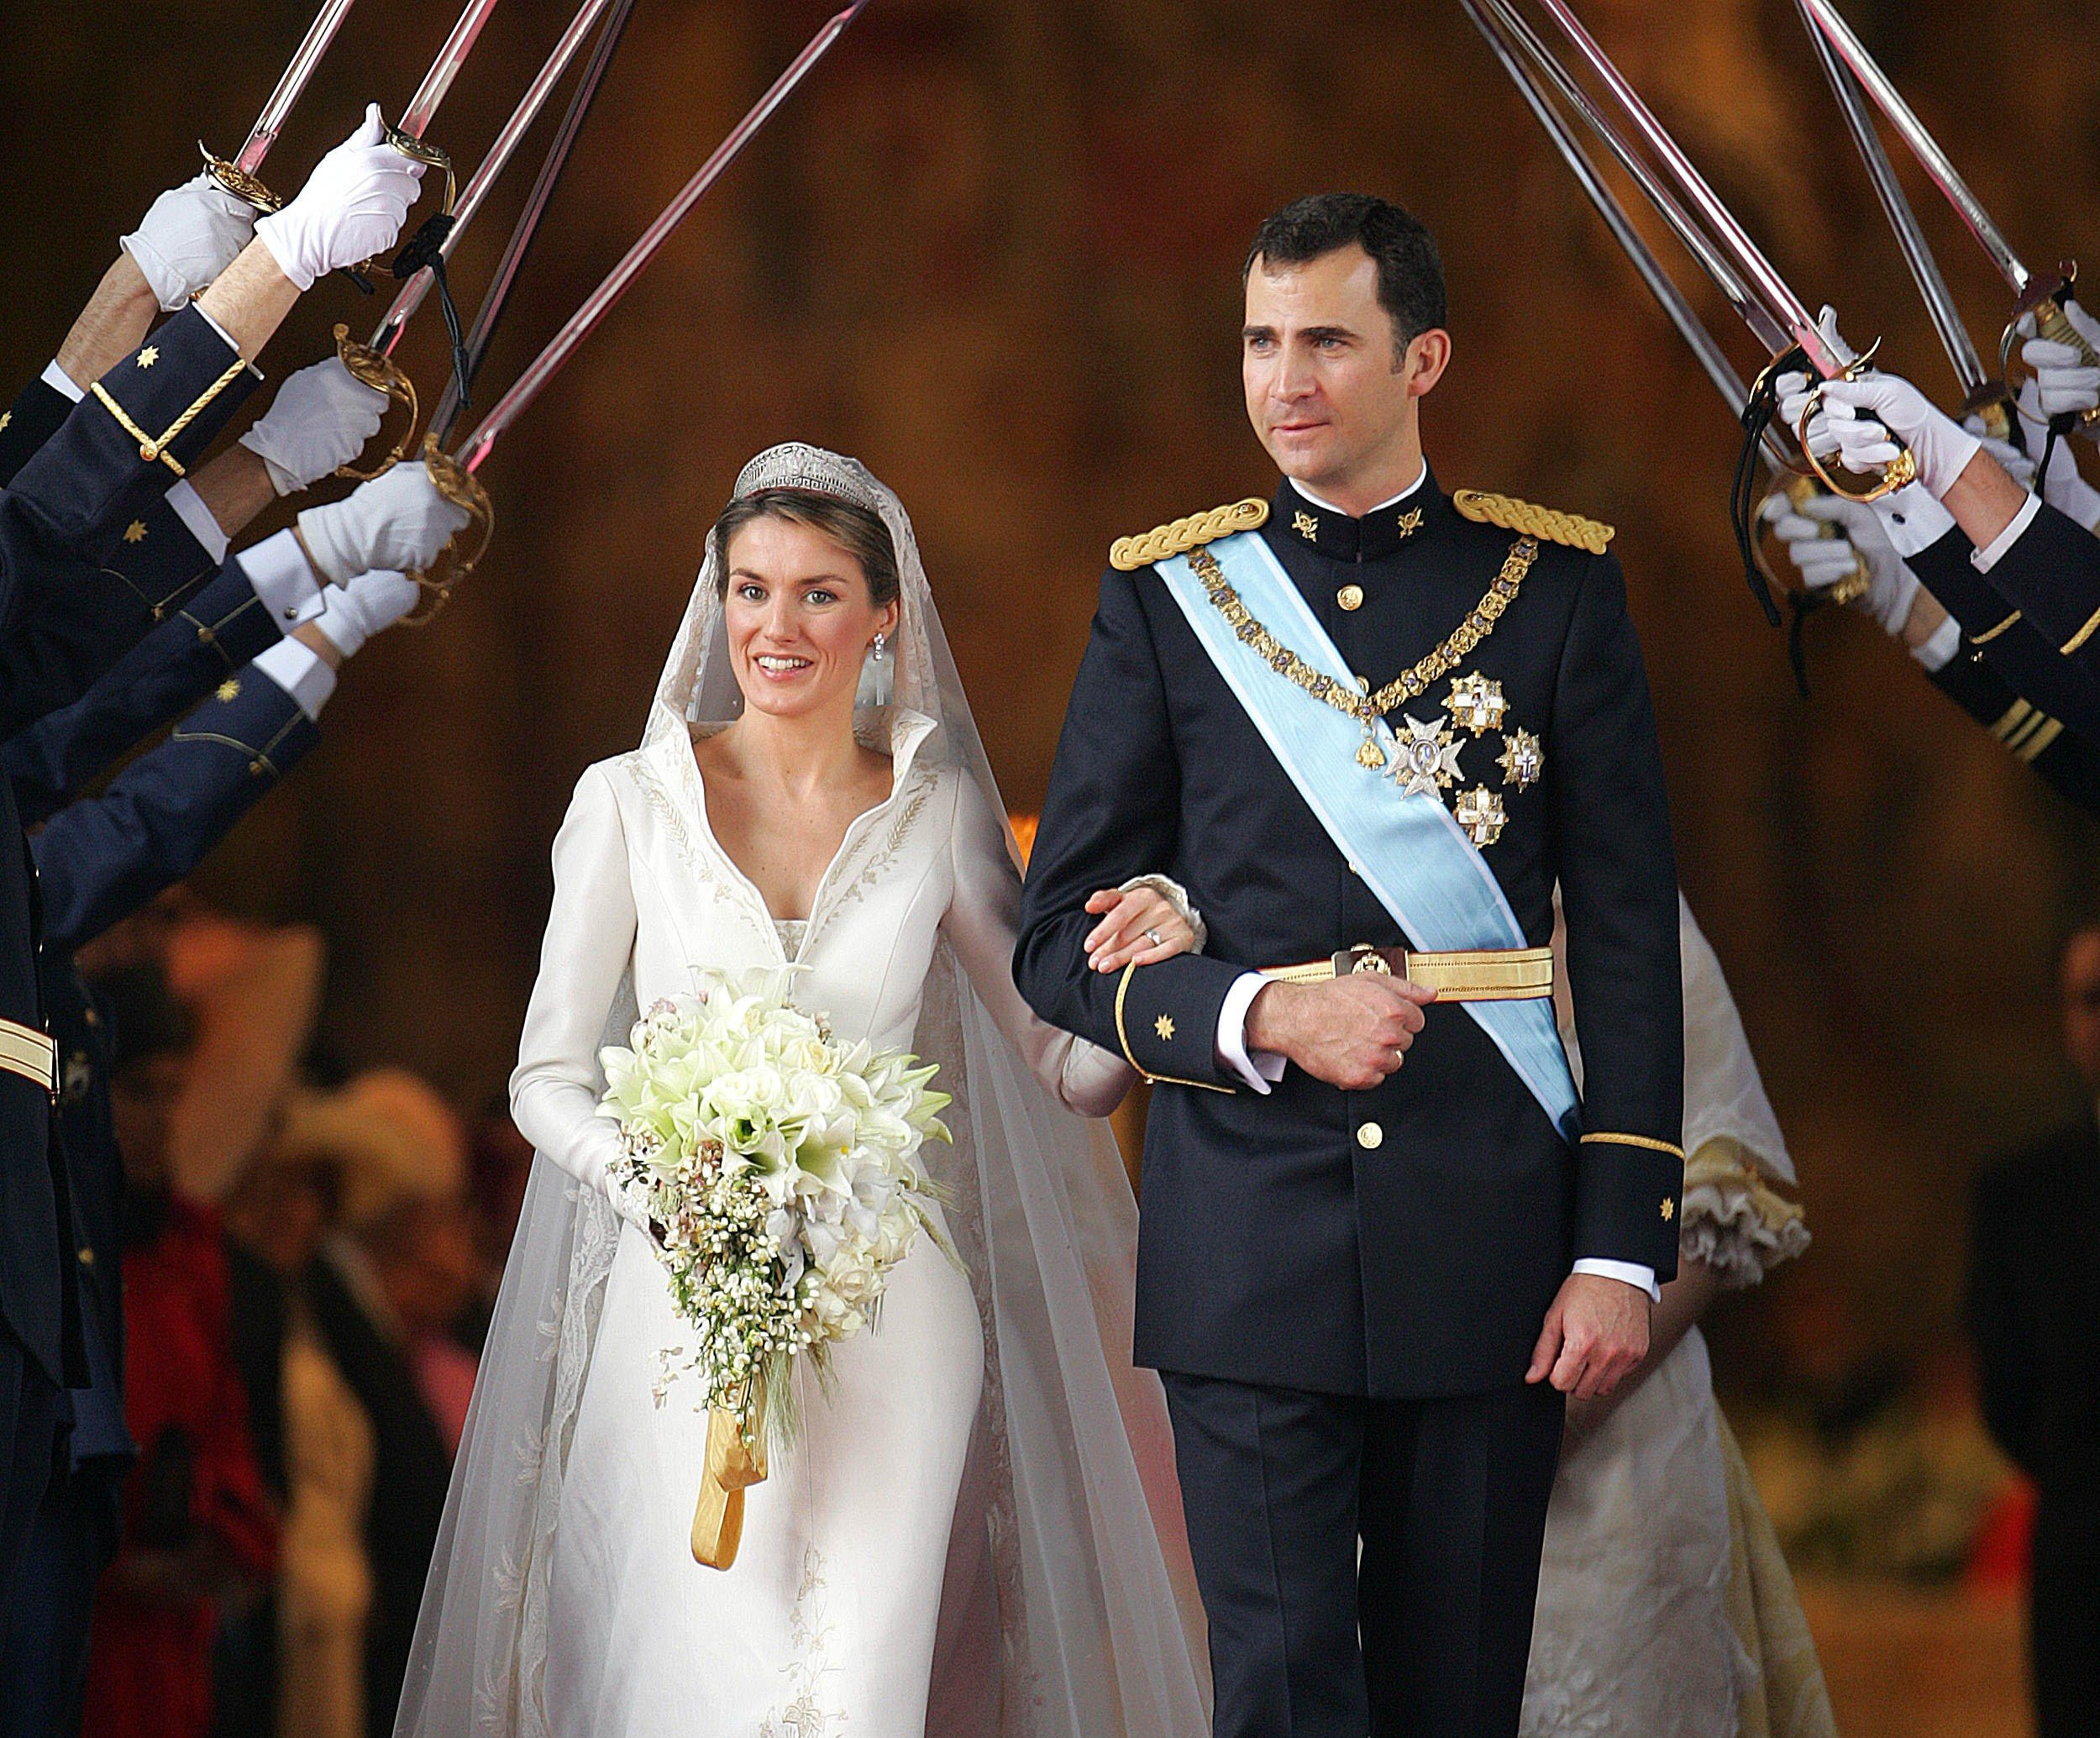 Princess of Asturias Letizia Ortiz and Spanish Crown Felipe of Bourbon